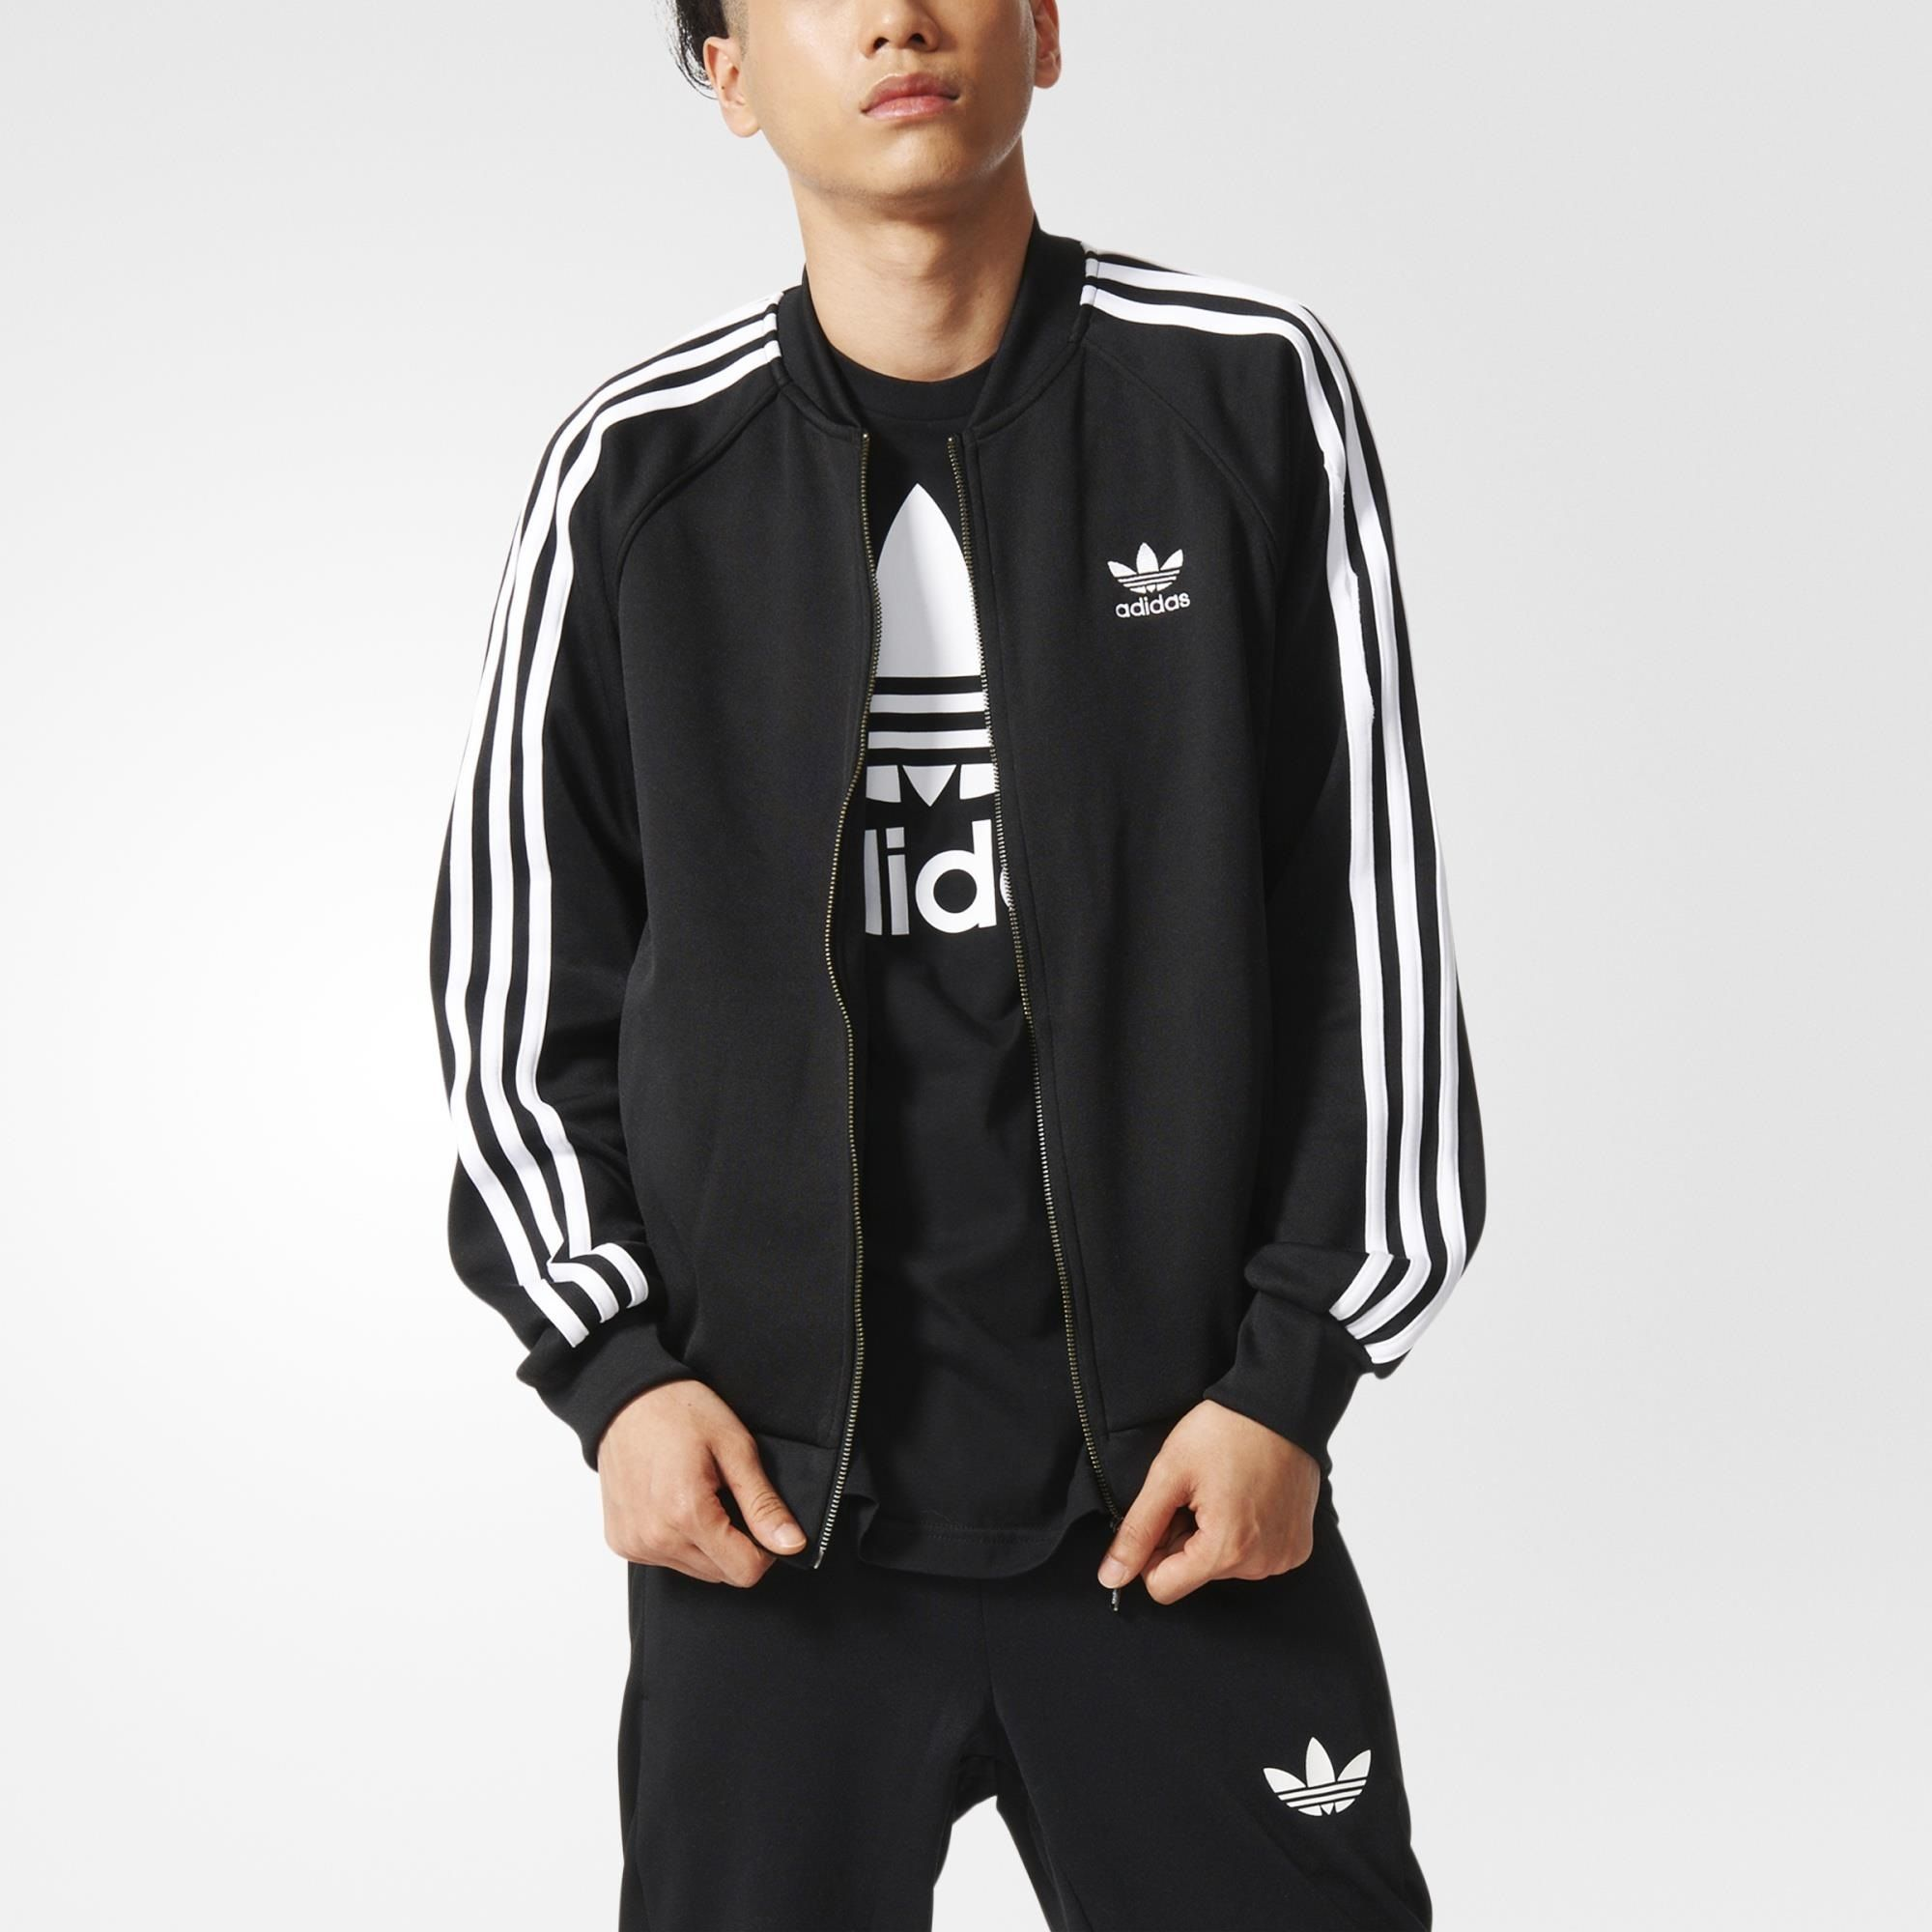 This men's track jacket keeps the adidas Superstar legacy alive with a  timeless 3-Stripes